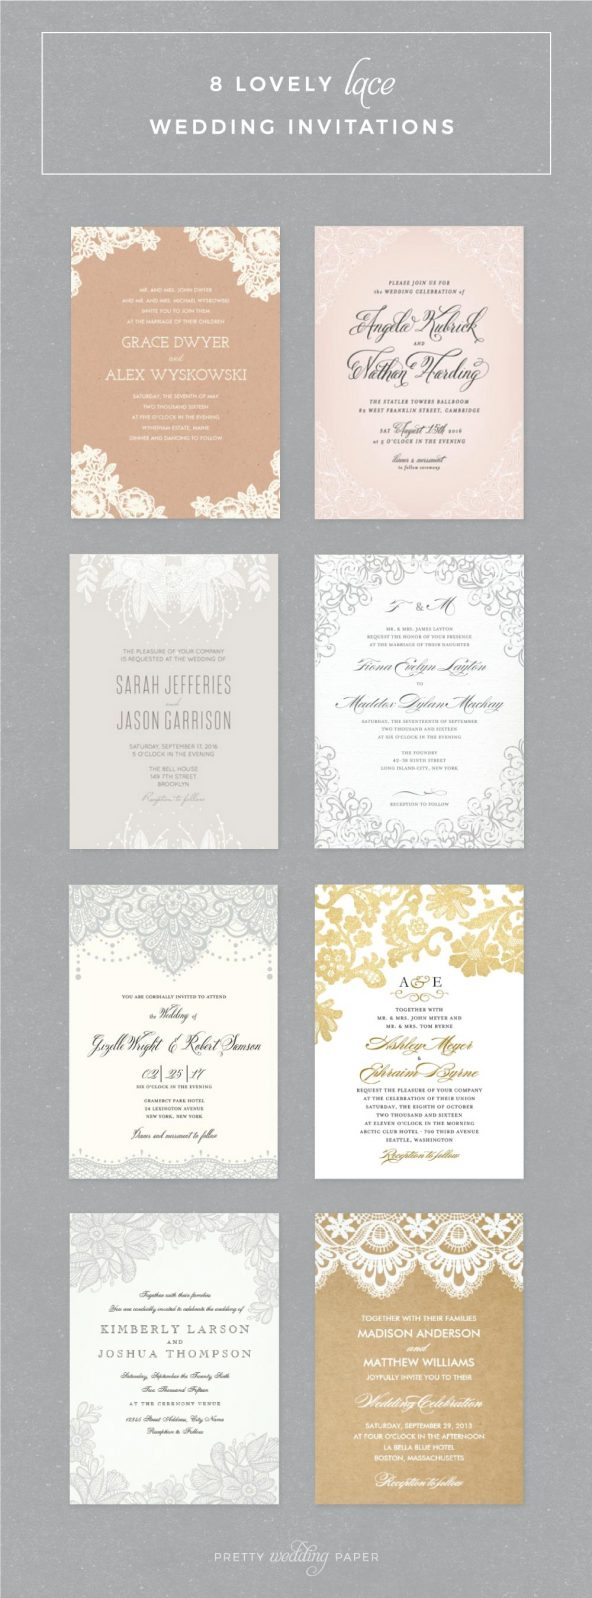 Rustic Lace Wedding Invitations 8 Lovely Lace Wedding Invitations Ideas For Romantic Weddings